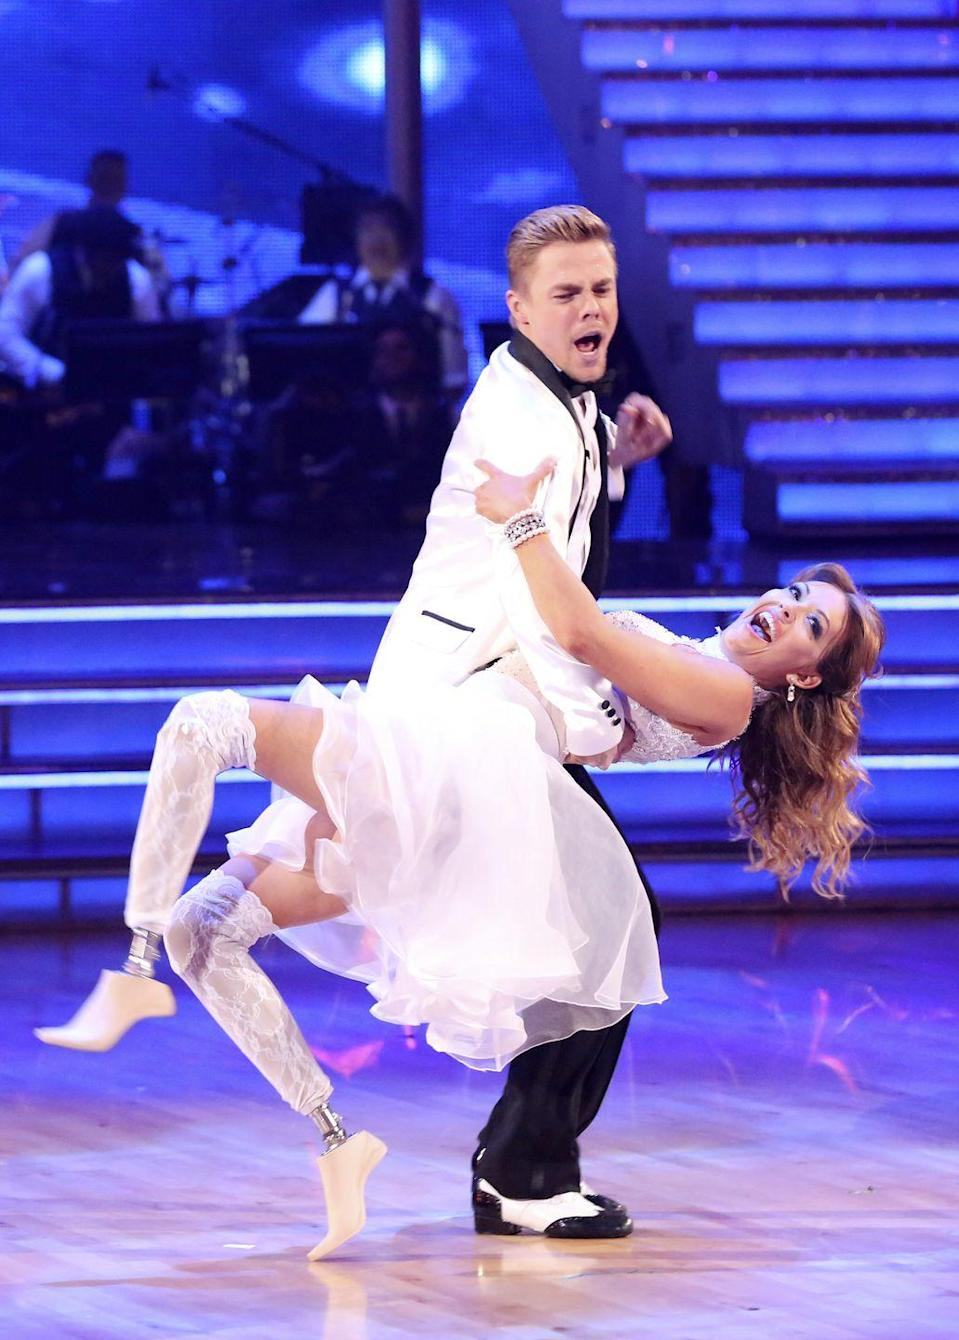 "<p>The pro snowboarder was rushed to the hospital during a live show. Amy displaced her rib during her season 18 rumba with her pro partner Derek Hough. She shared health updates with her fans on <a href=""https://twitter.com/AmyPurdyGurl/status/461203164885053442"" rel=""nofollow noopener"" target=""_blank"" data-ylk=""slk:Twitter"" class=""link rapid-noclick-resp"">Twitter</a>: ""So, Looks like I have a rib out of place and my muscles are in spasm. I am being very proactive in healing up so I can continue this journey.""</p>"